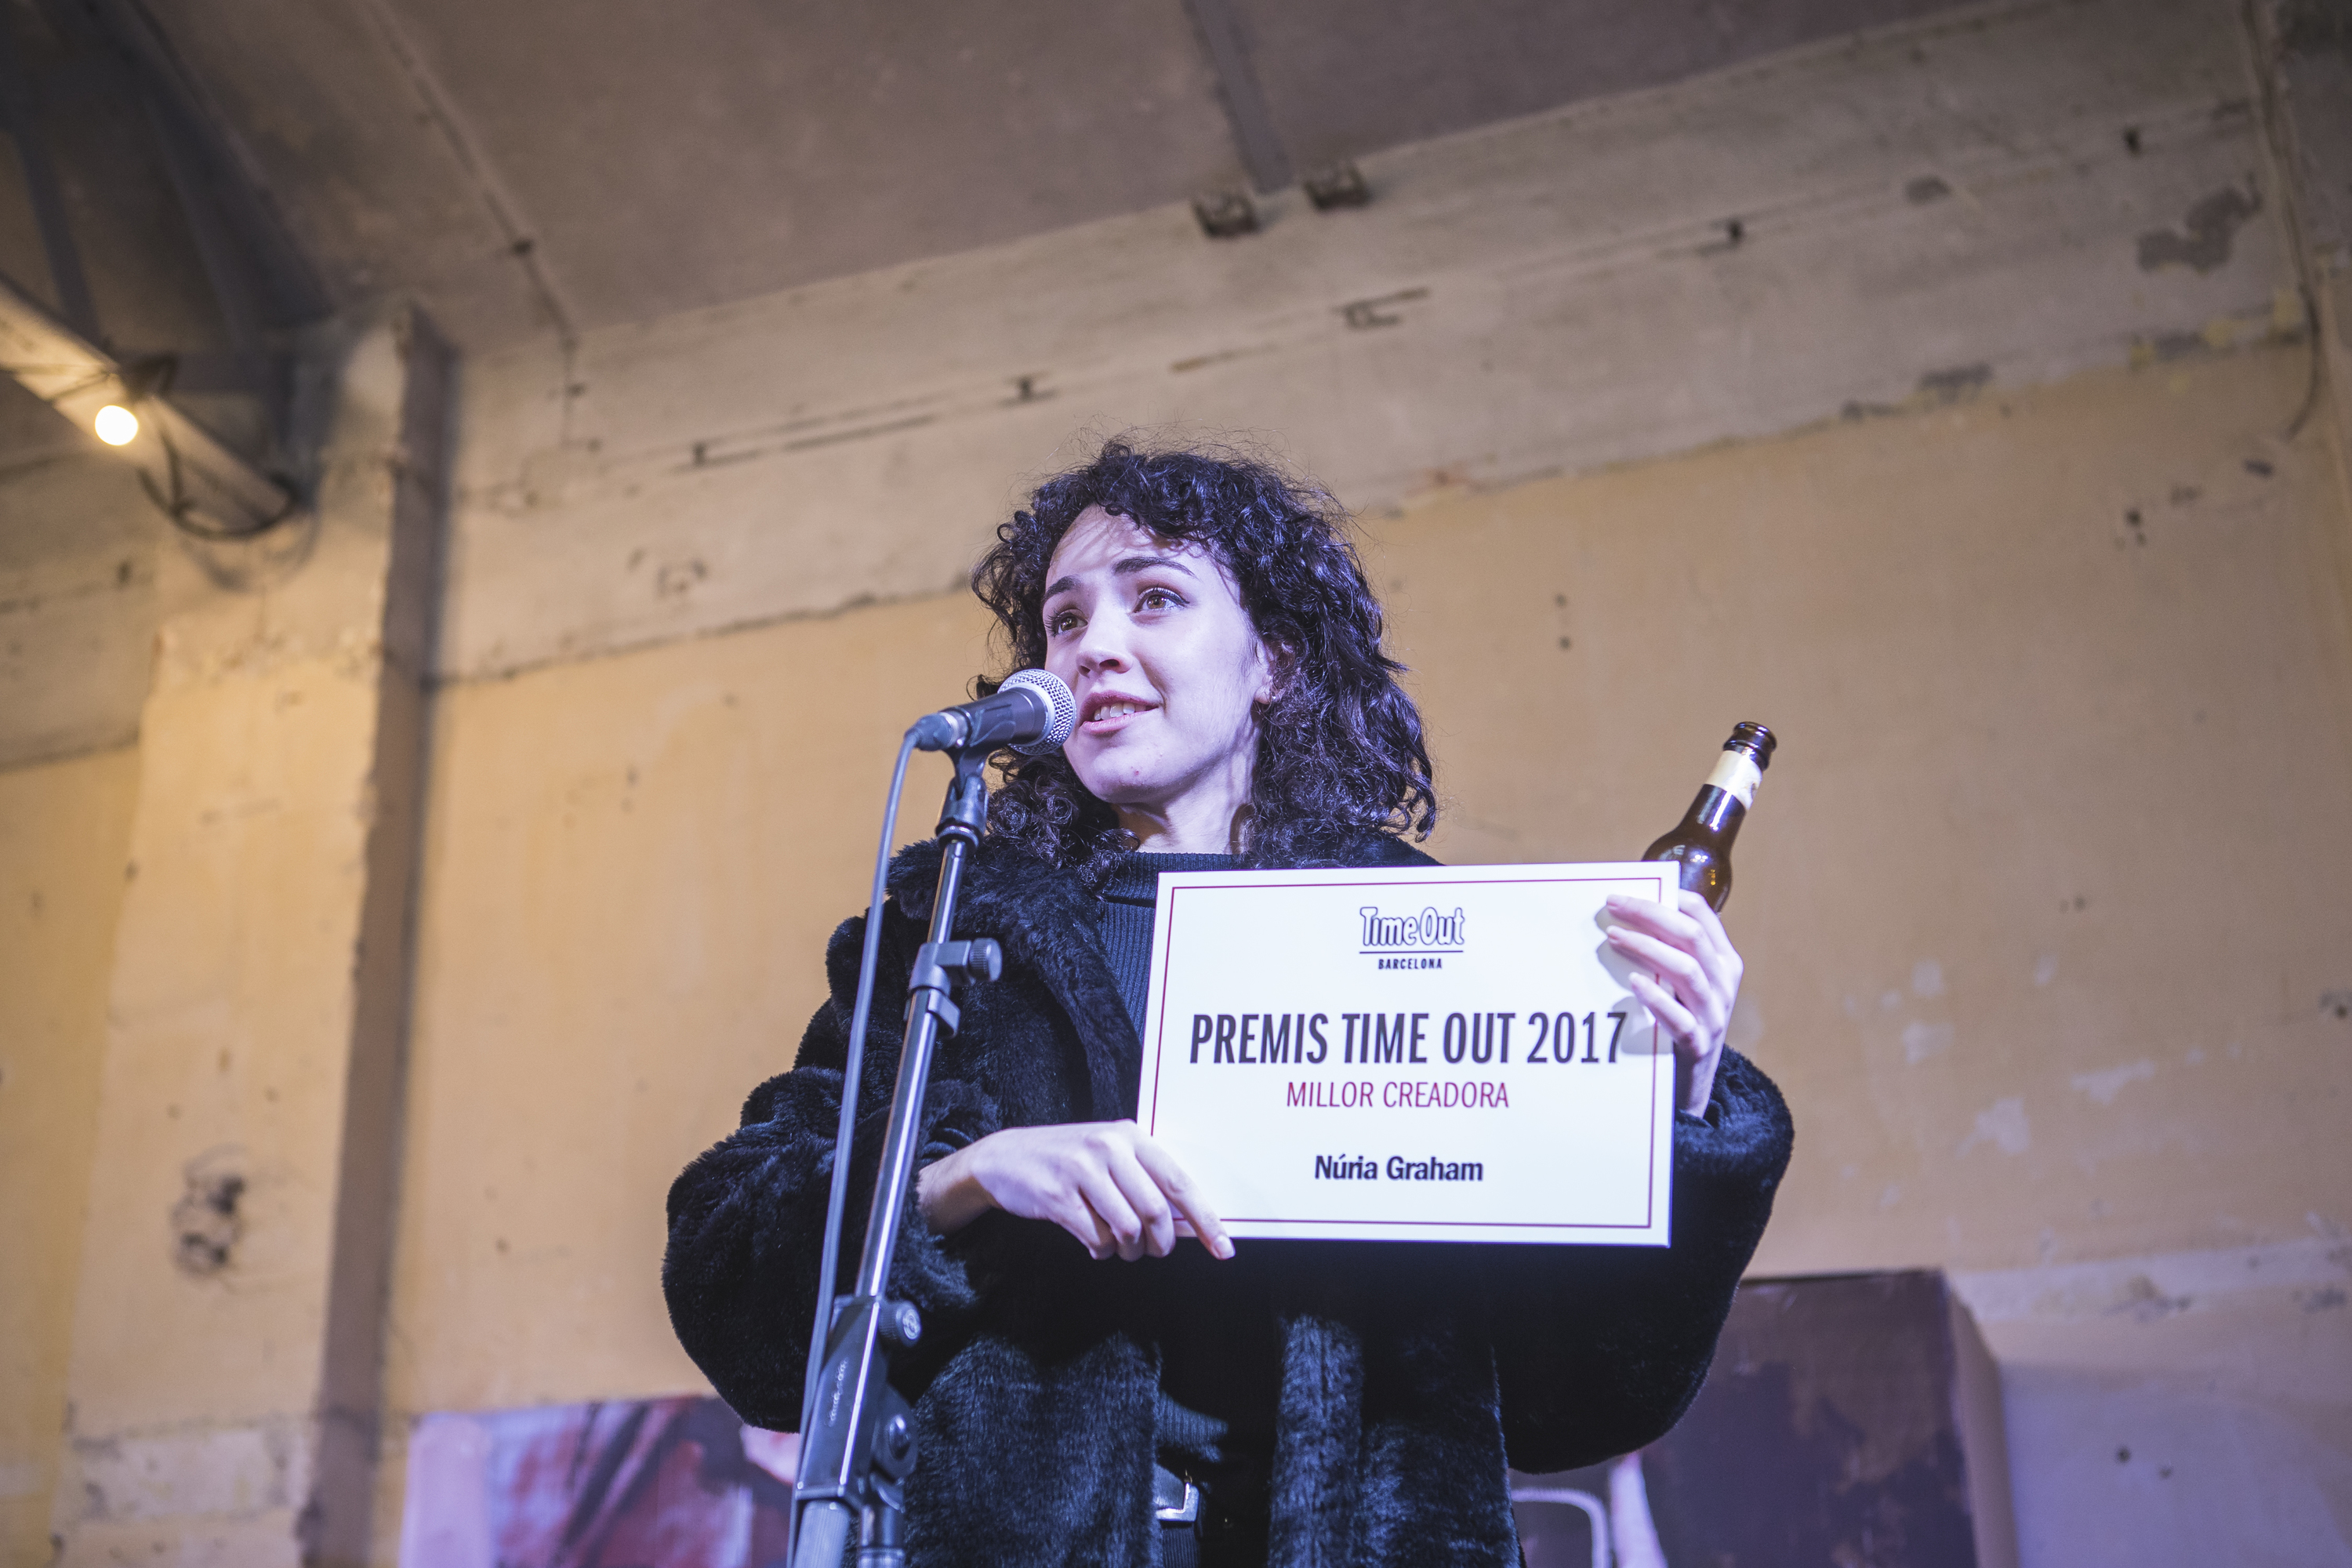 Premis Time Out 2017, Millor Creadora, Núria Graham